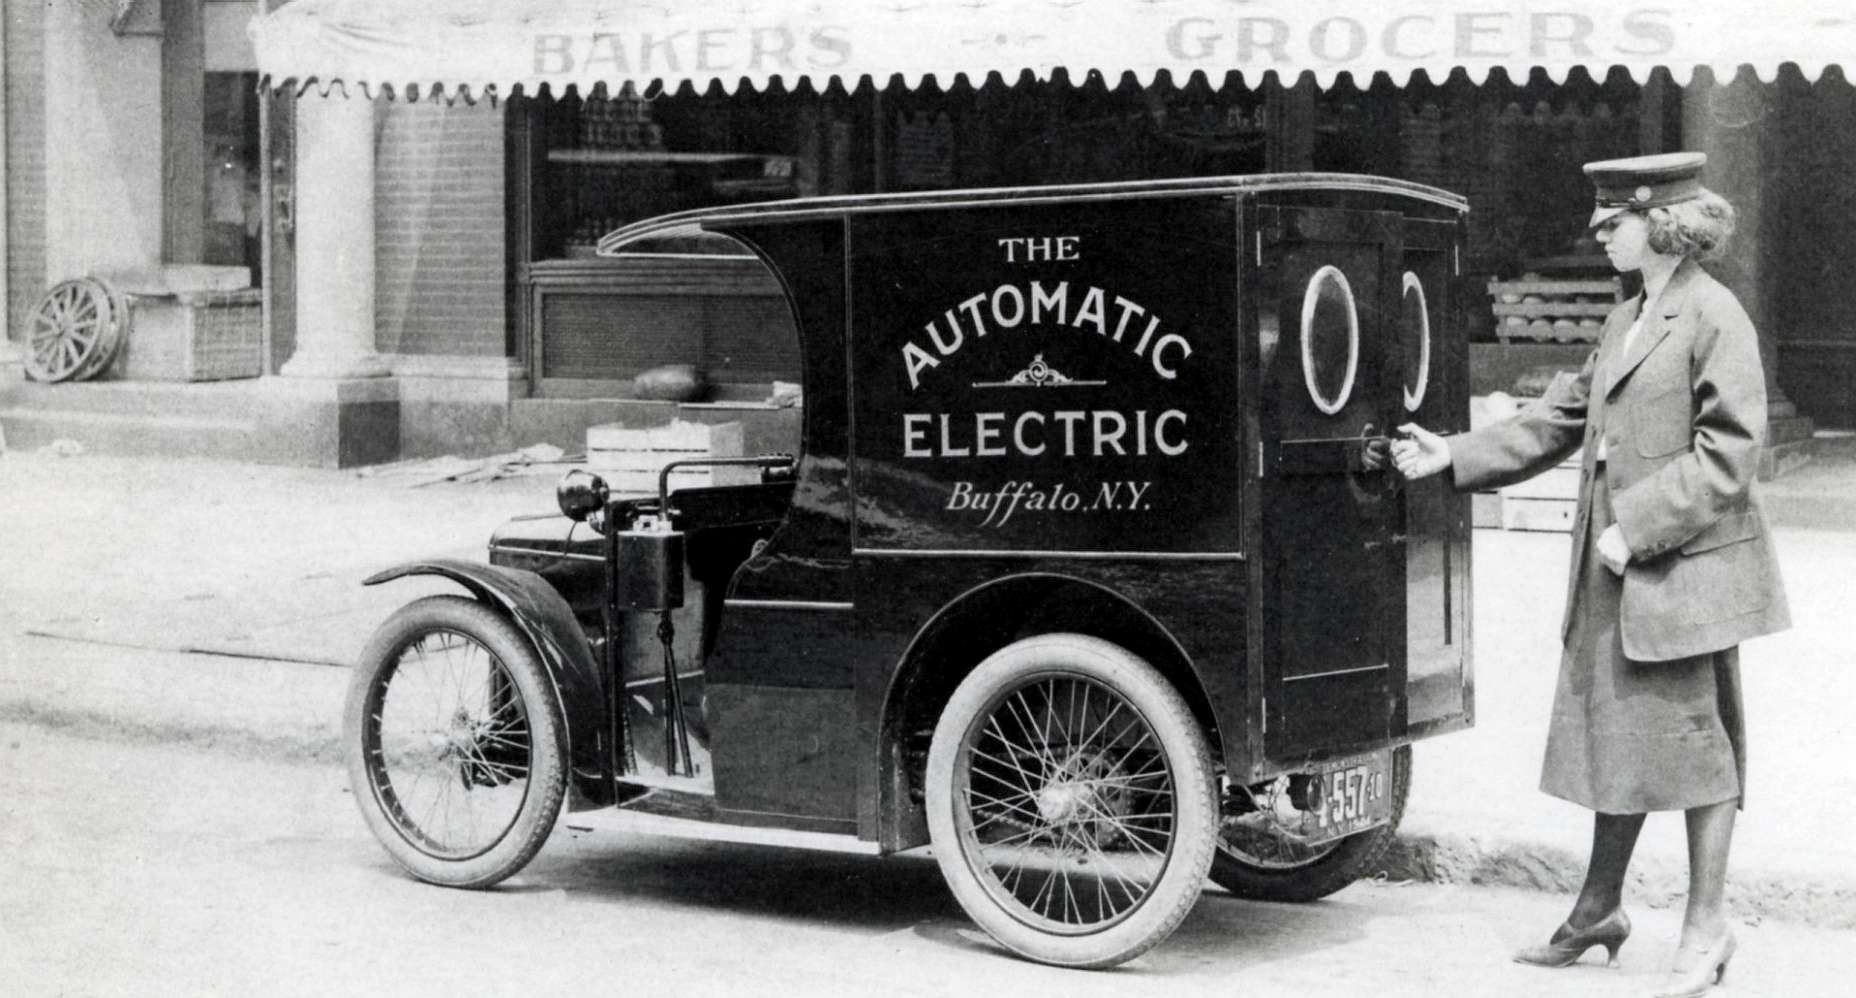 1921 electric delivery van, Buffalo, New York